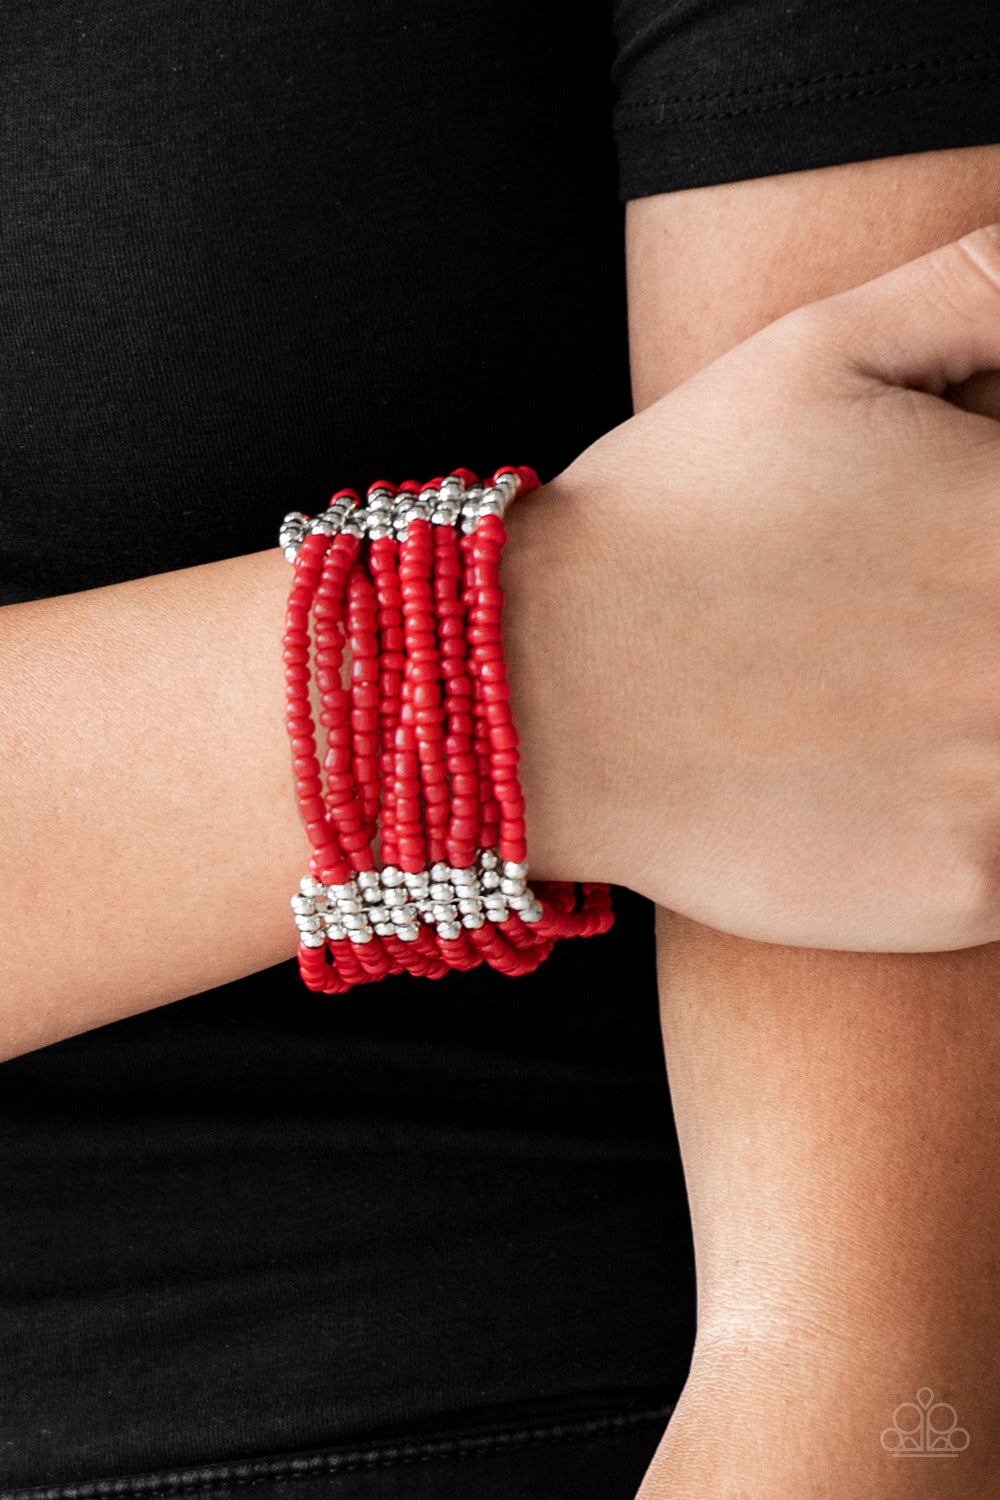 Joined together with metallic fittings, countless red seed beads are threaded along stretchy elastic bands. Sections of dainty silver beads are sprinkled along the colorful layers, adding hints of shimmer to the seasonal palette.  Sold as one individual bracelet.  Always nickel and lead free.